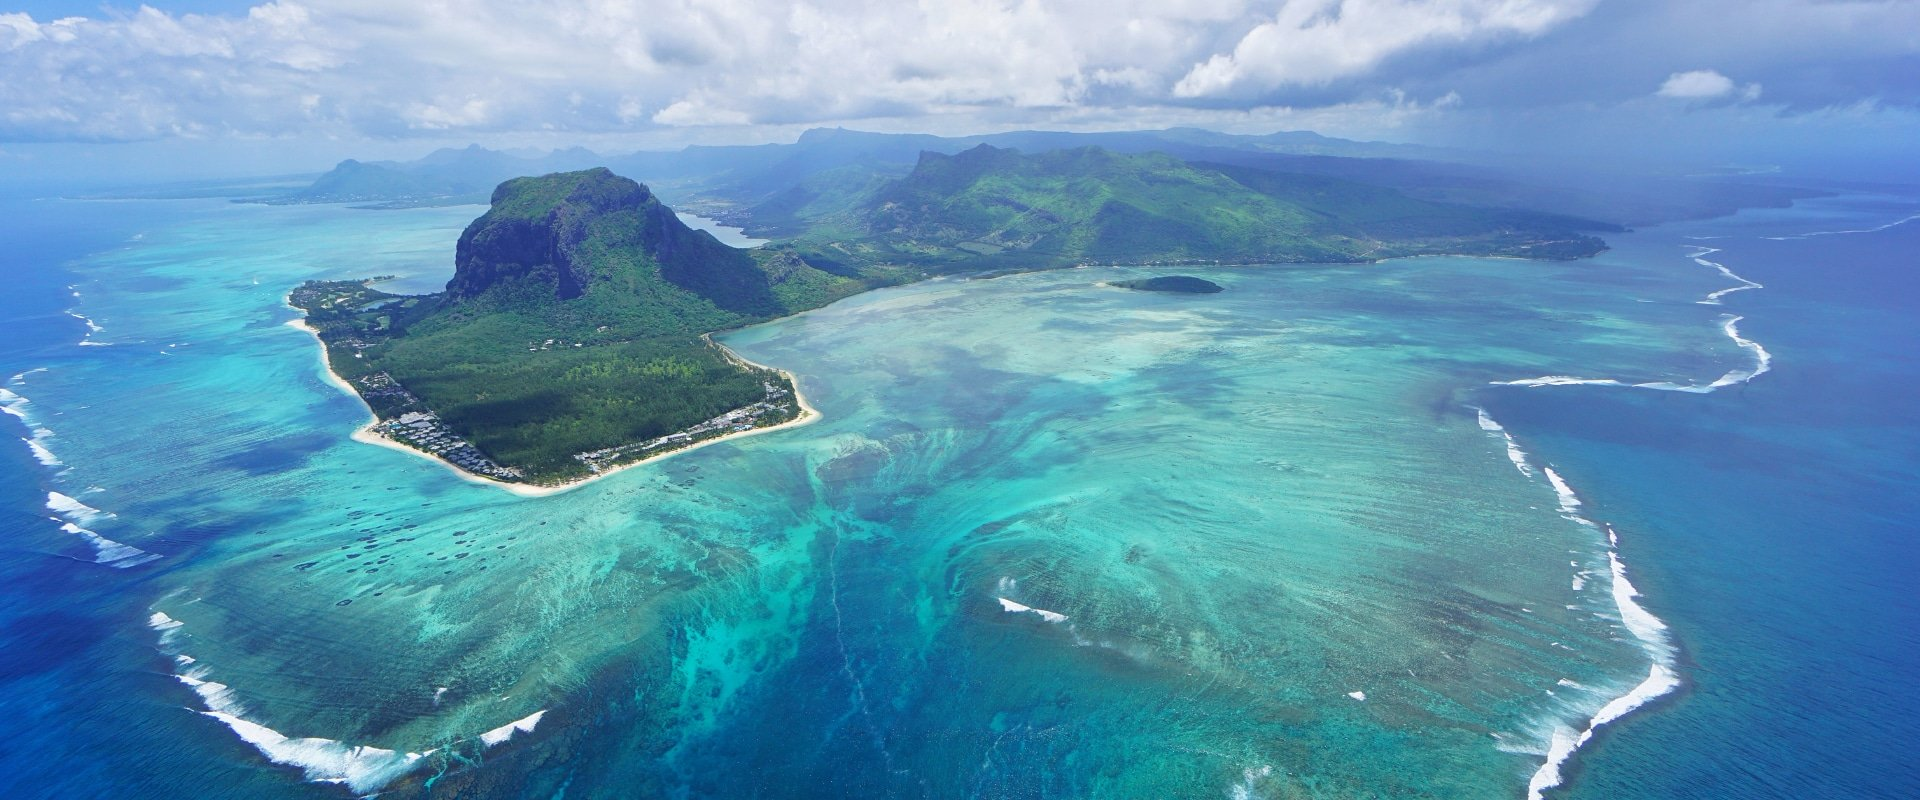 View the island from above in this exciting helicopter flight